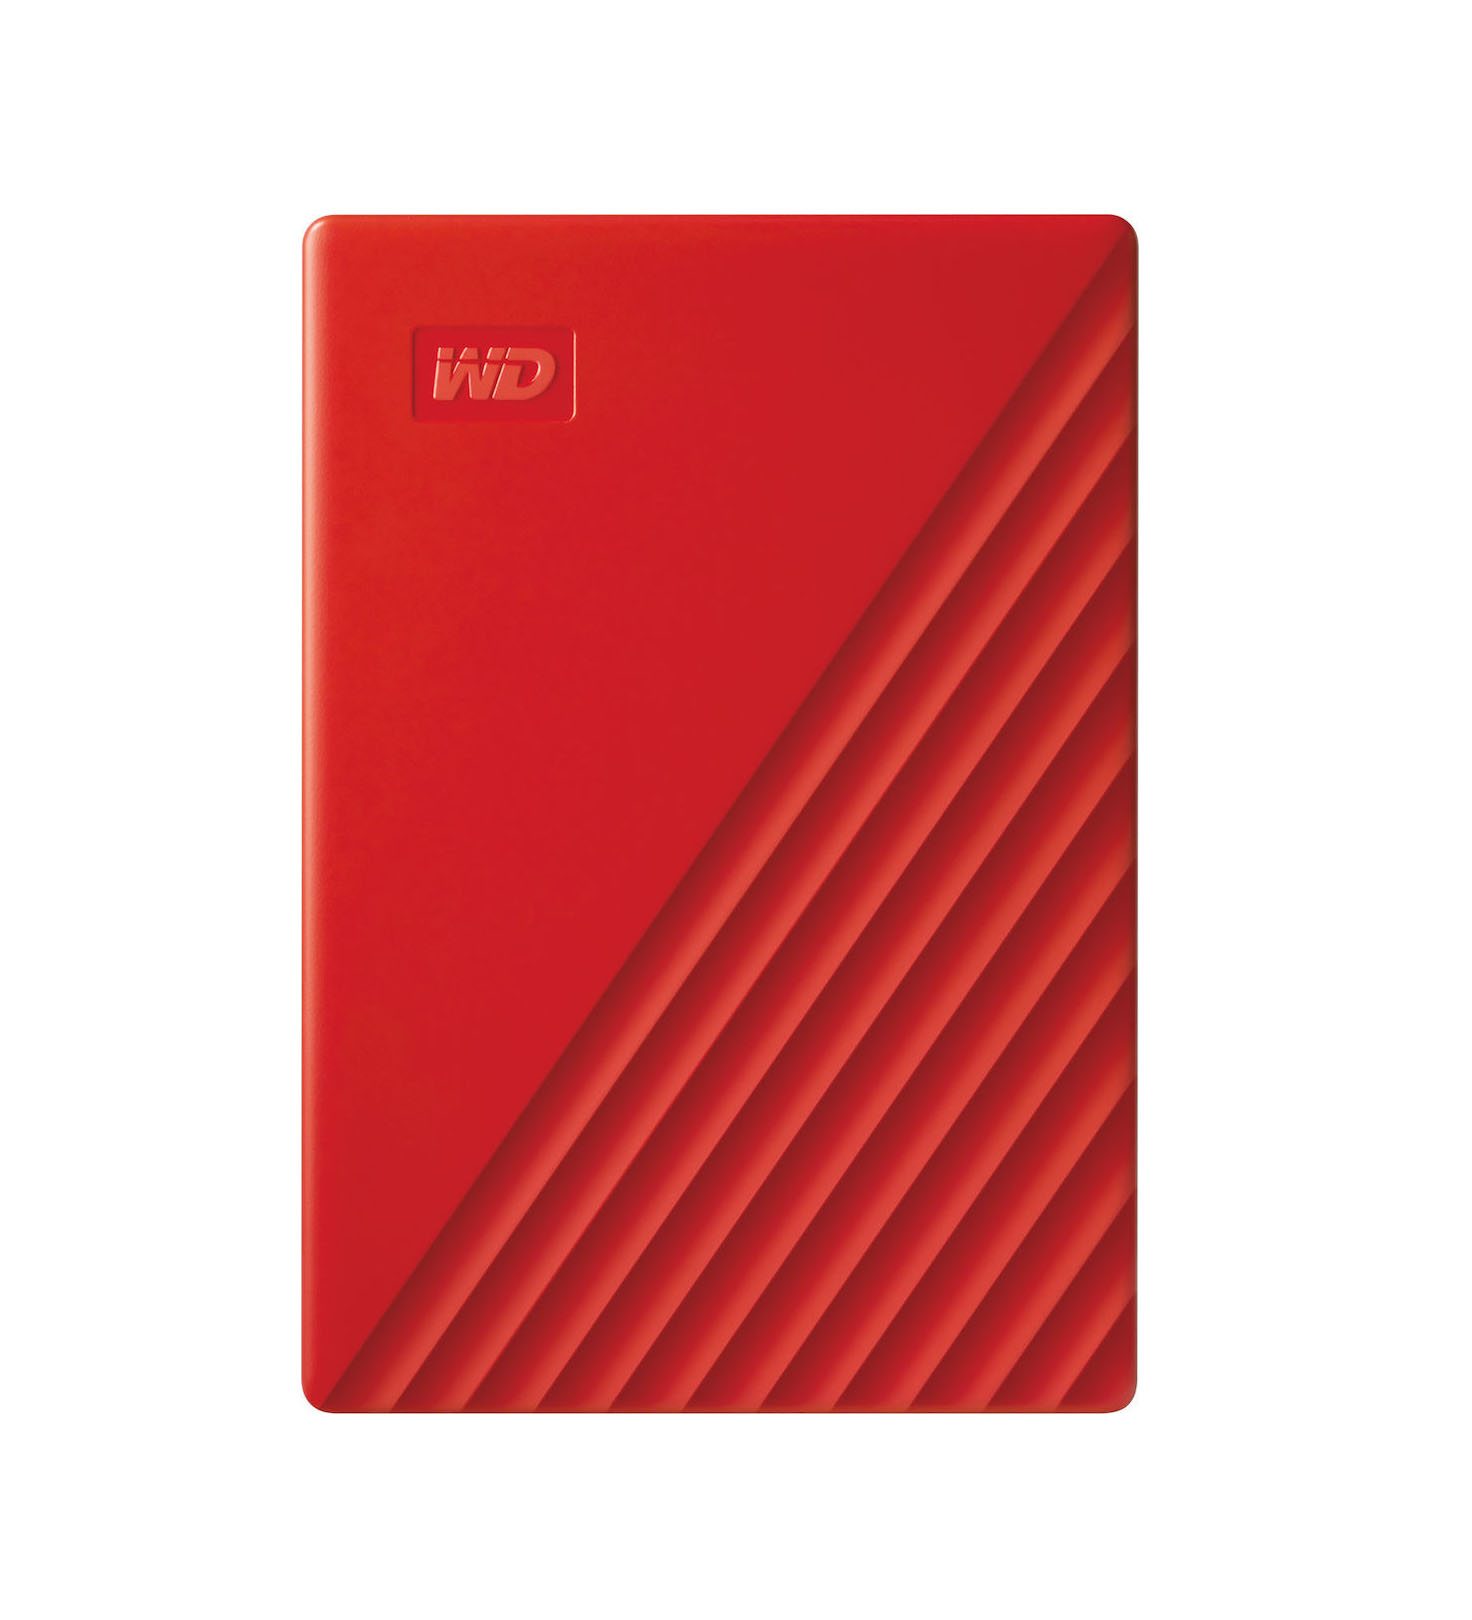 Western Digital My Passport 4TB 2019  WDBPKJ0040BRD-WESN  Εξωτερικός Σκληρός Δίσκος* USB 3.0 Red